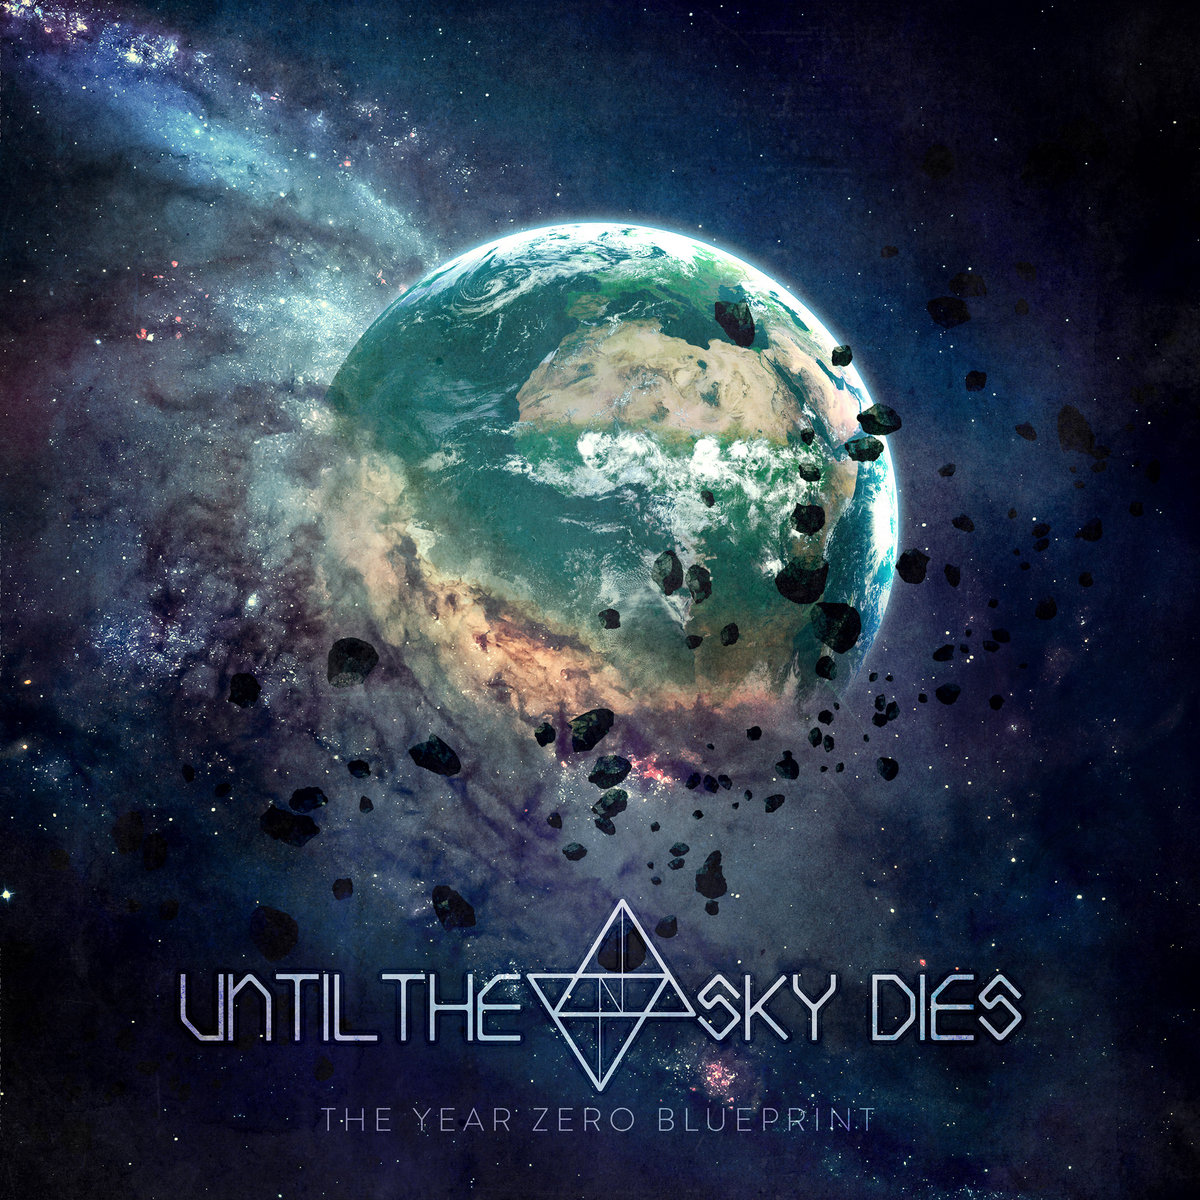 The year zero blueprint cimmerian shade recordings by until the sky dies malvernweather